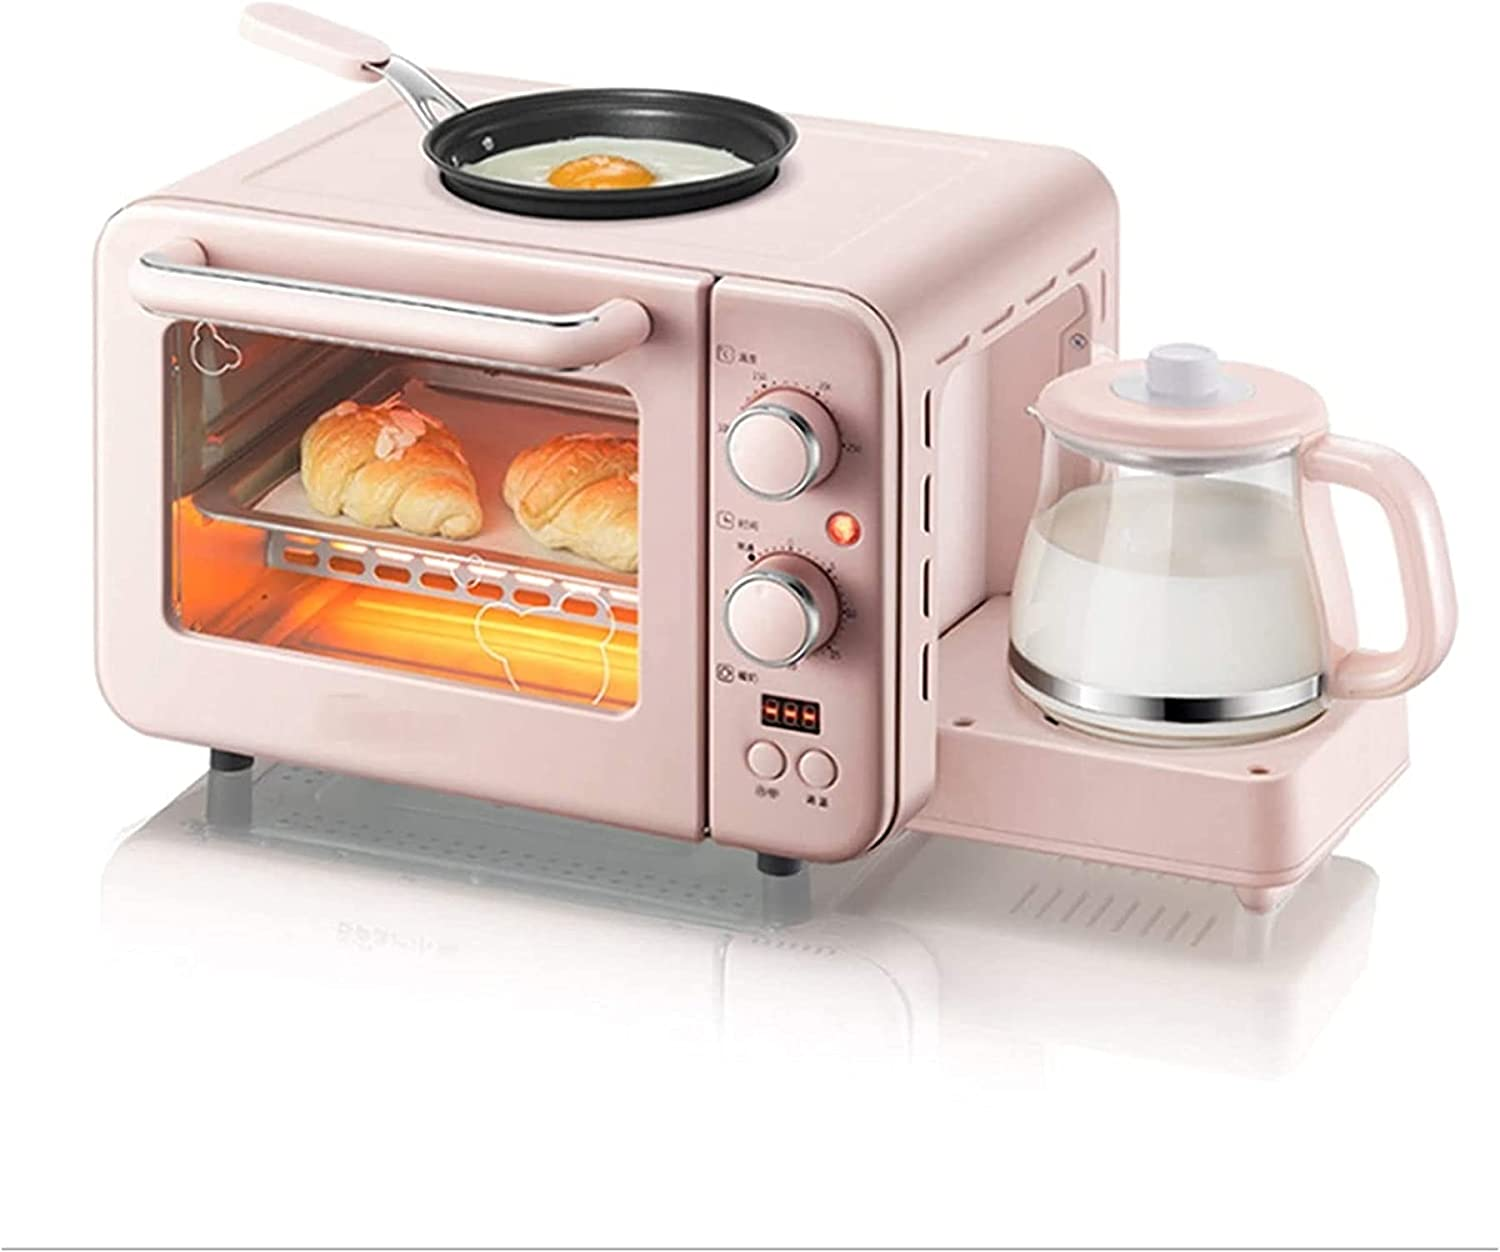 HCHENX Toaster Oven Mini Oven, 3 in 1 Breakfast Machine Multifunction Home Drip Coffee Maker Bread Pizza Oven Frying Pan Toaster Family Breakfast Making air Fryer